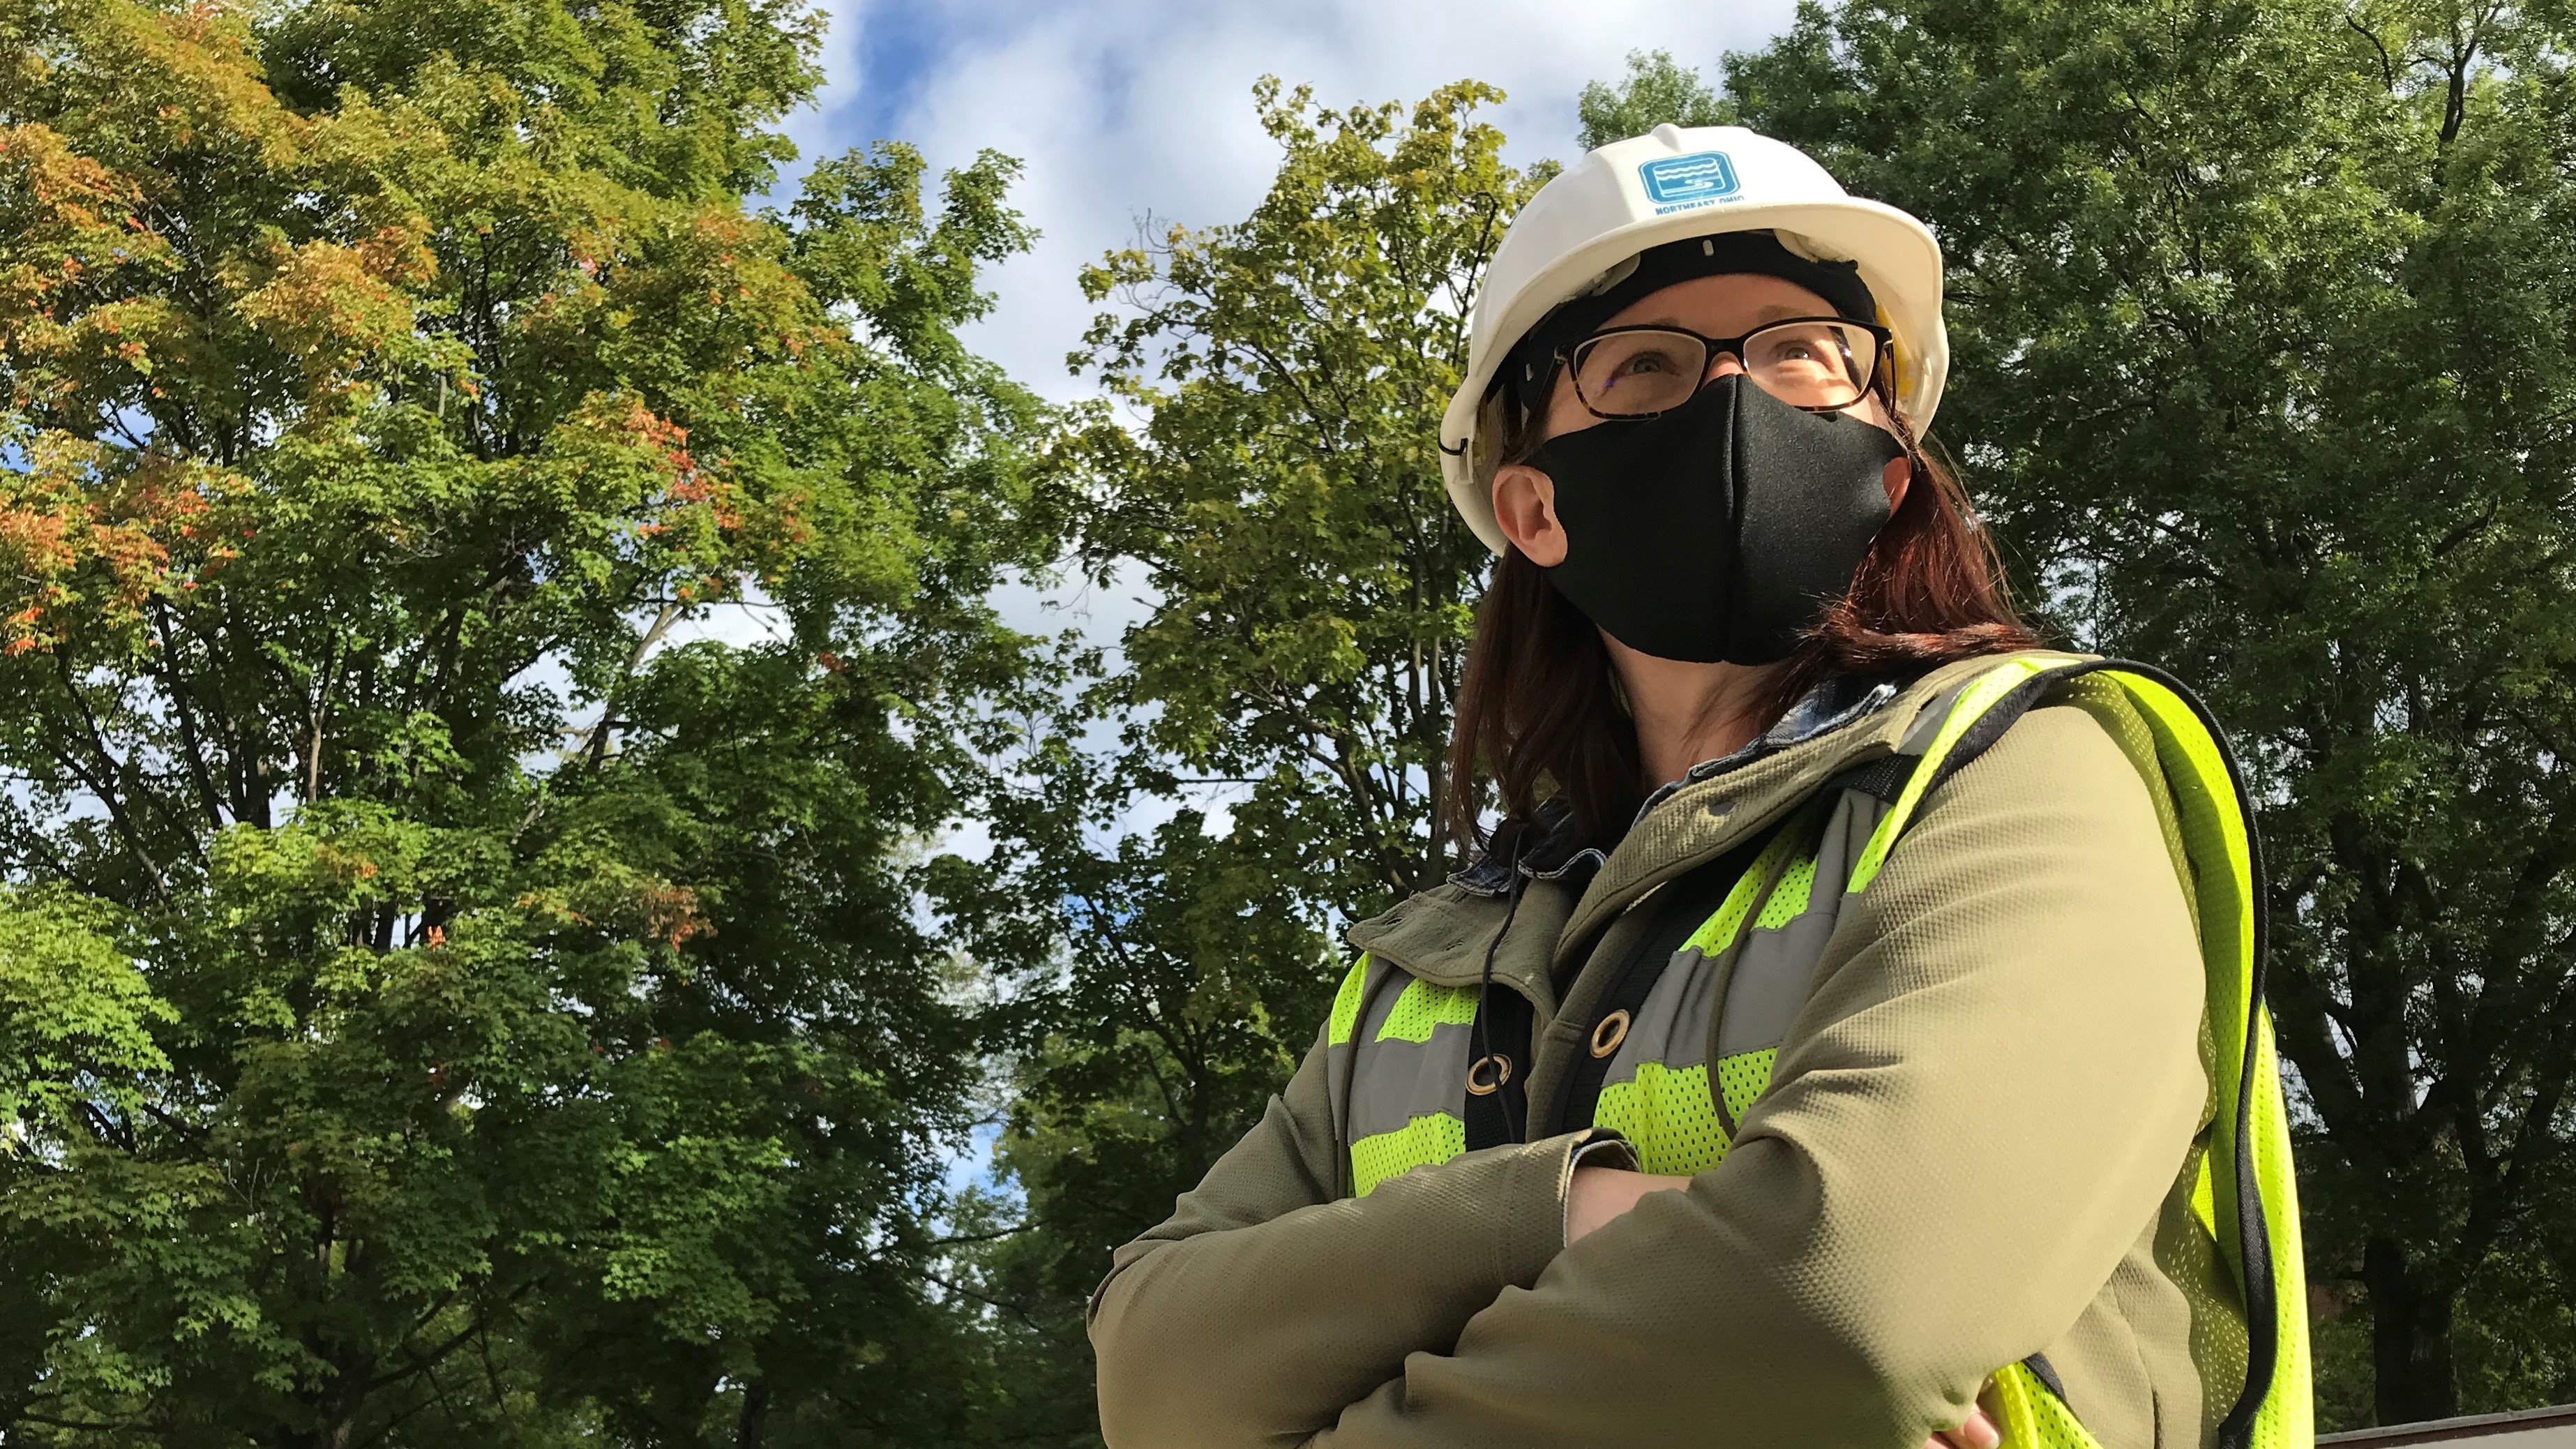 Female construction supervisor in a face covering, safety vest, and hard hat. Arms folded, focused on a point beyond the camera as she overlooks a project site on a sunny fall day in Cleveland.